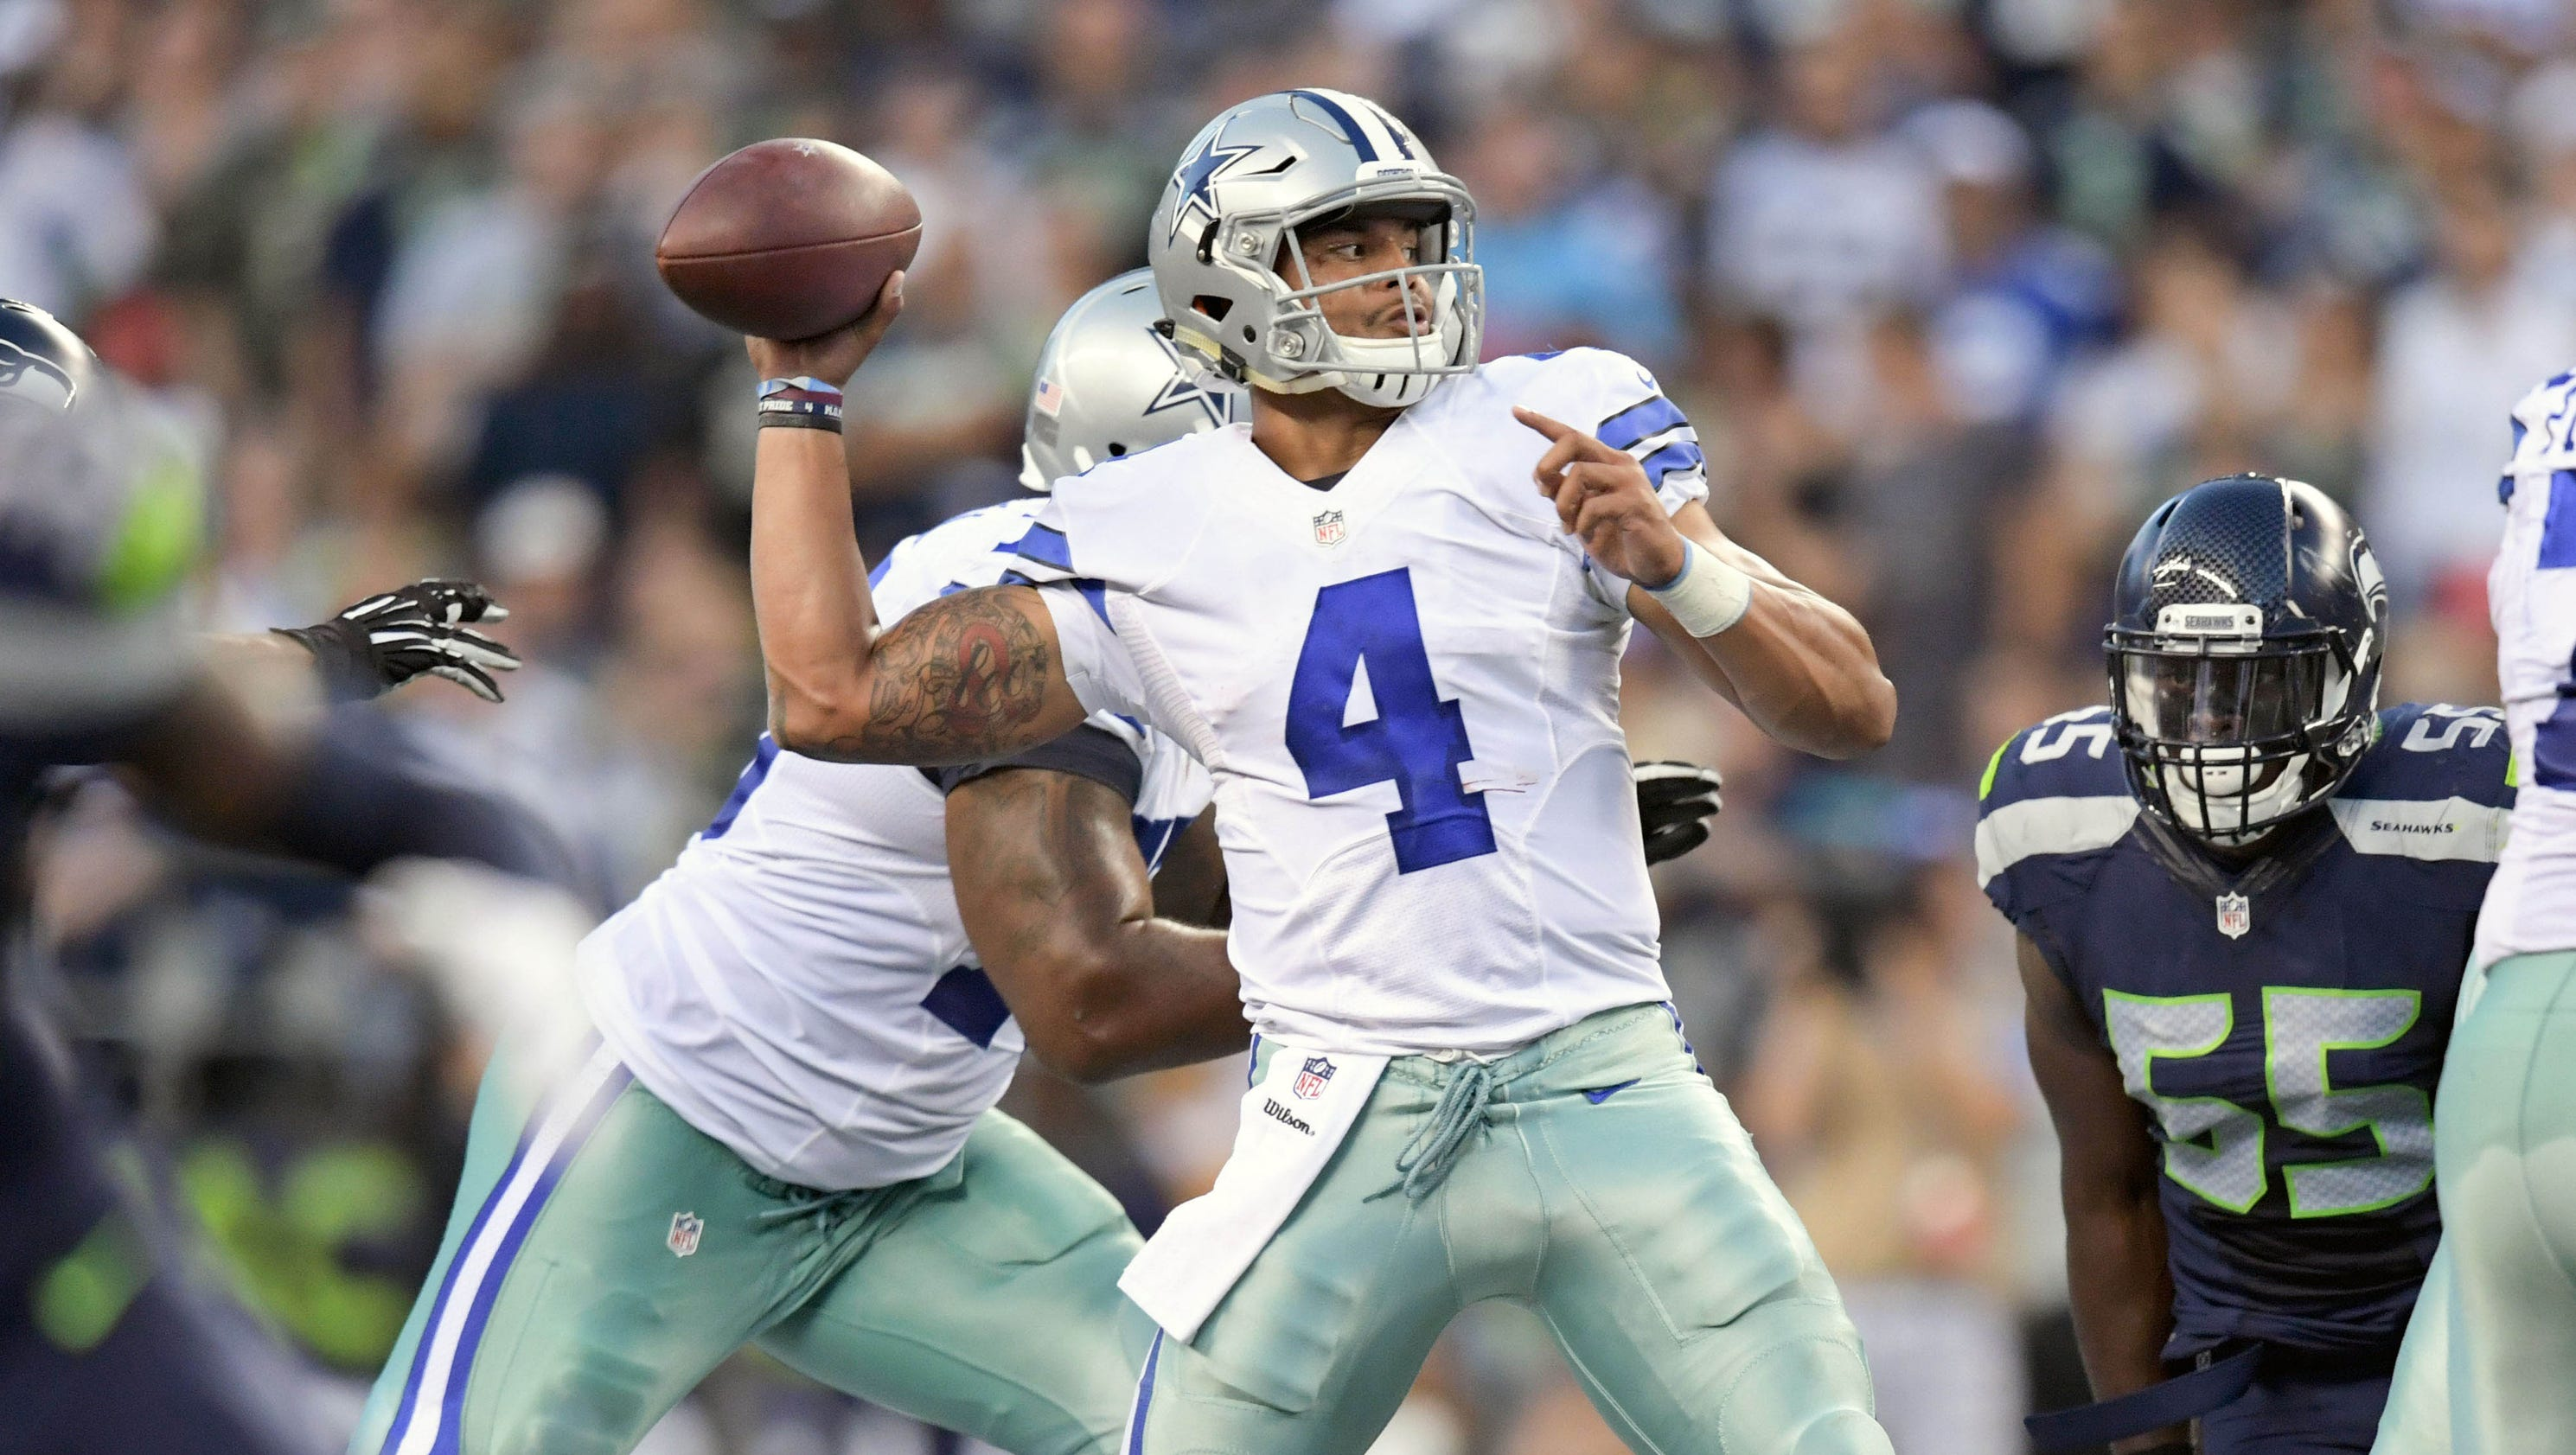 636079183045380694-usp-nfl-preseason-dallas-cowboys-at-seattle-seaha-001